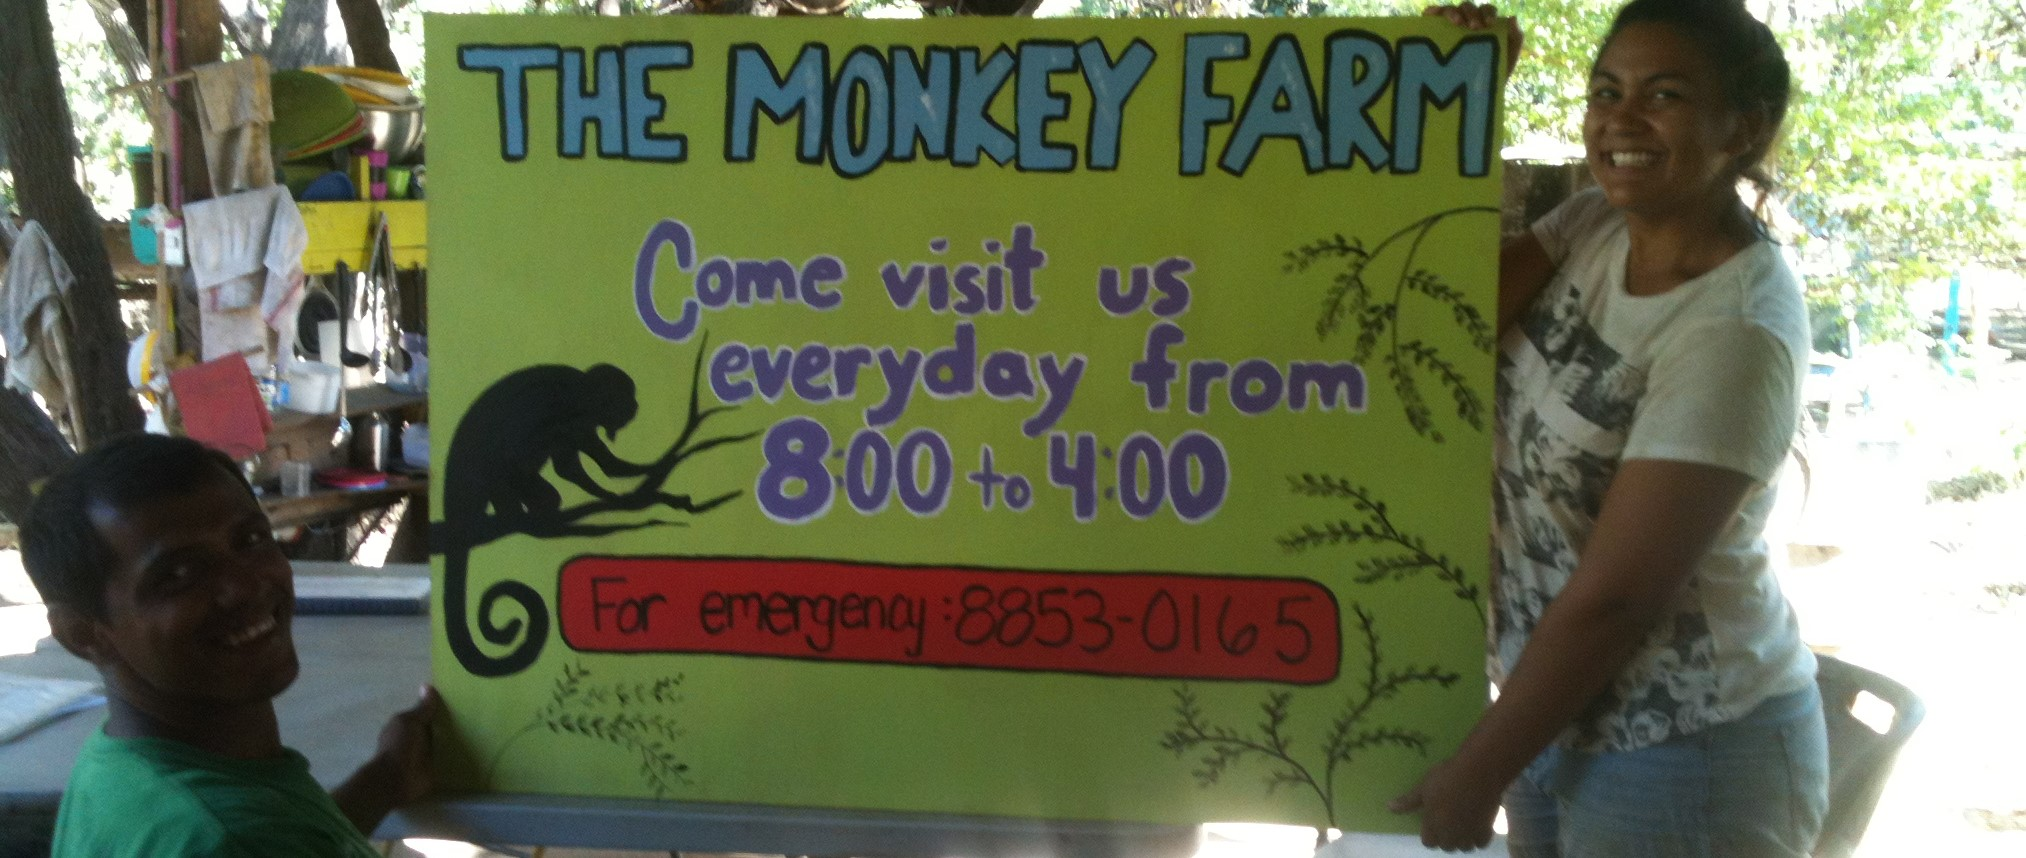 Directions to The Monkey Farm in Costa Rica